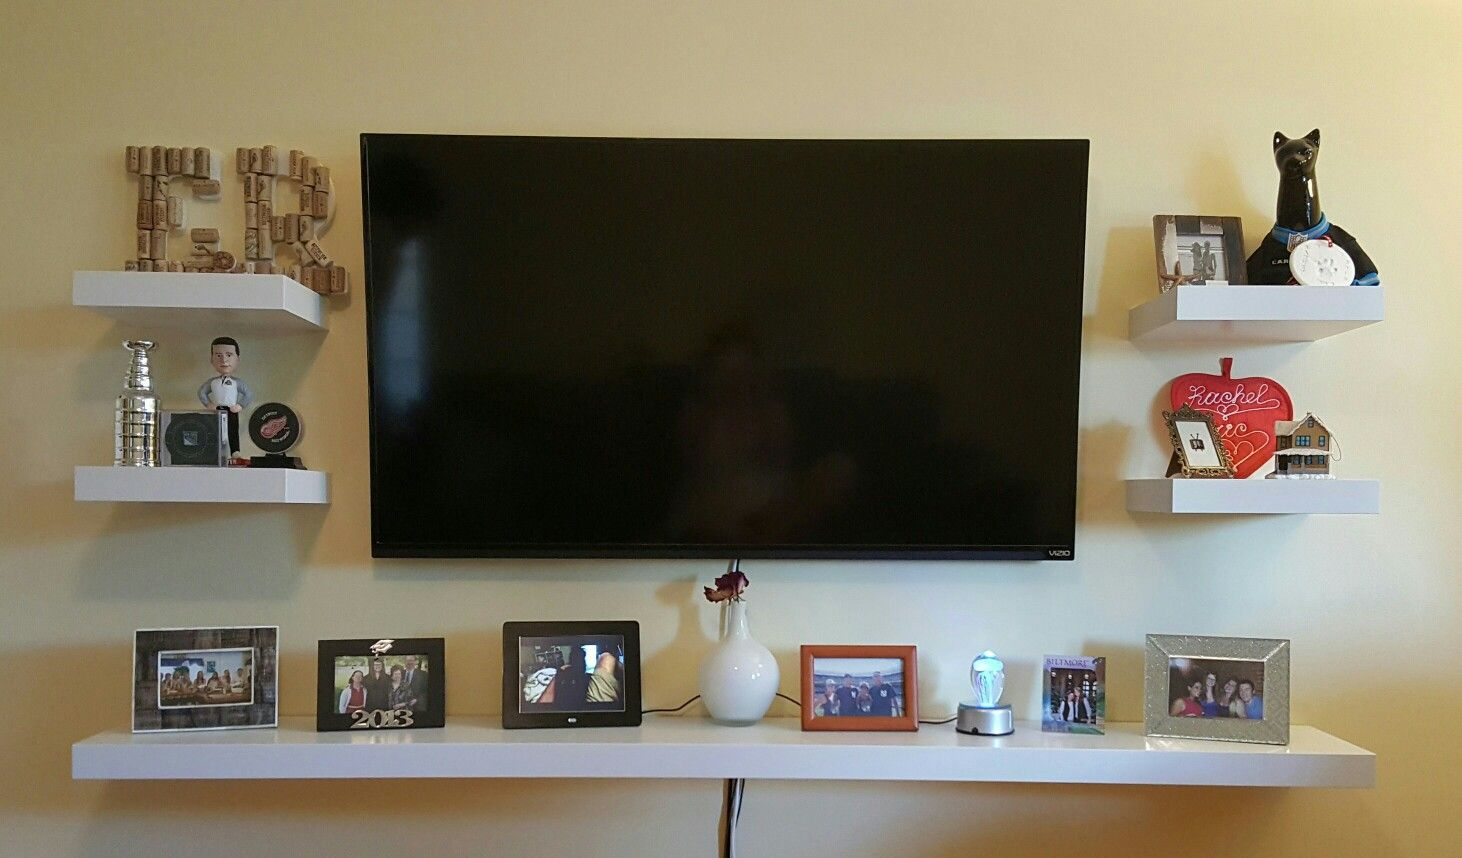 18 chic and modern tv wall mount ideas for living room Shelves design ideas